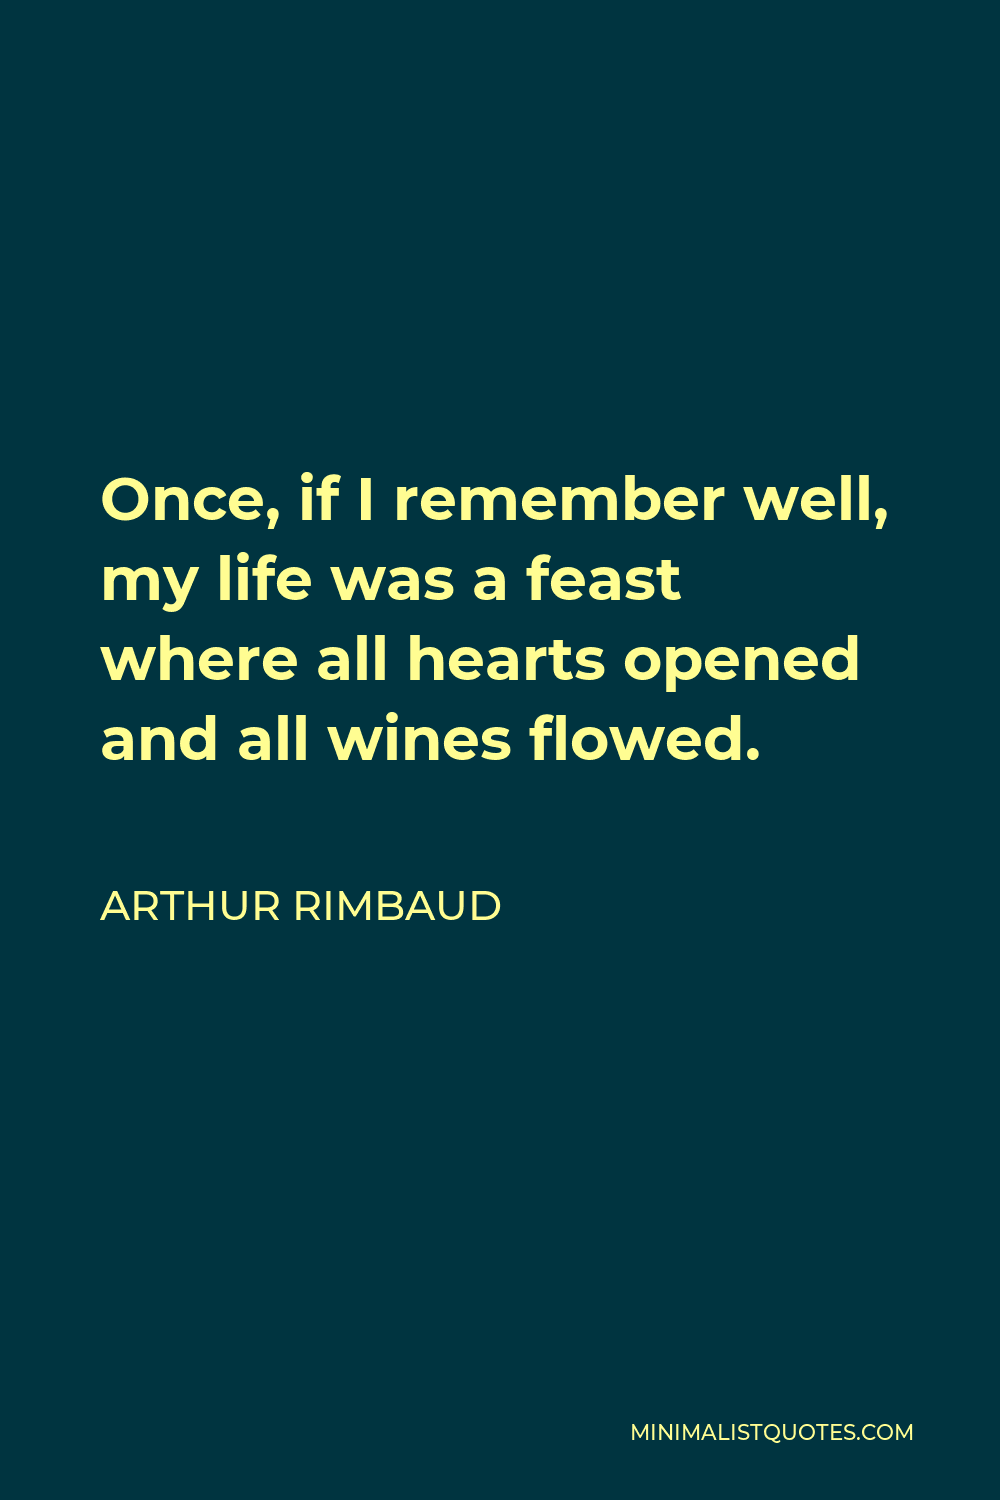 Arthur Rimbaud Quote - Once, if I remember well, my life was a feast where all hearts opened and all wines flowed.